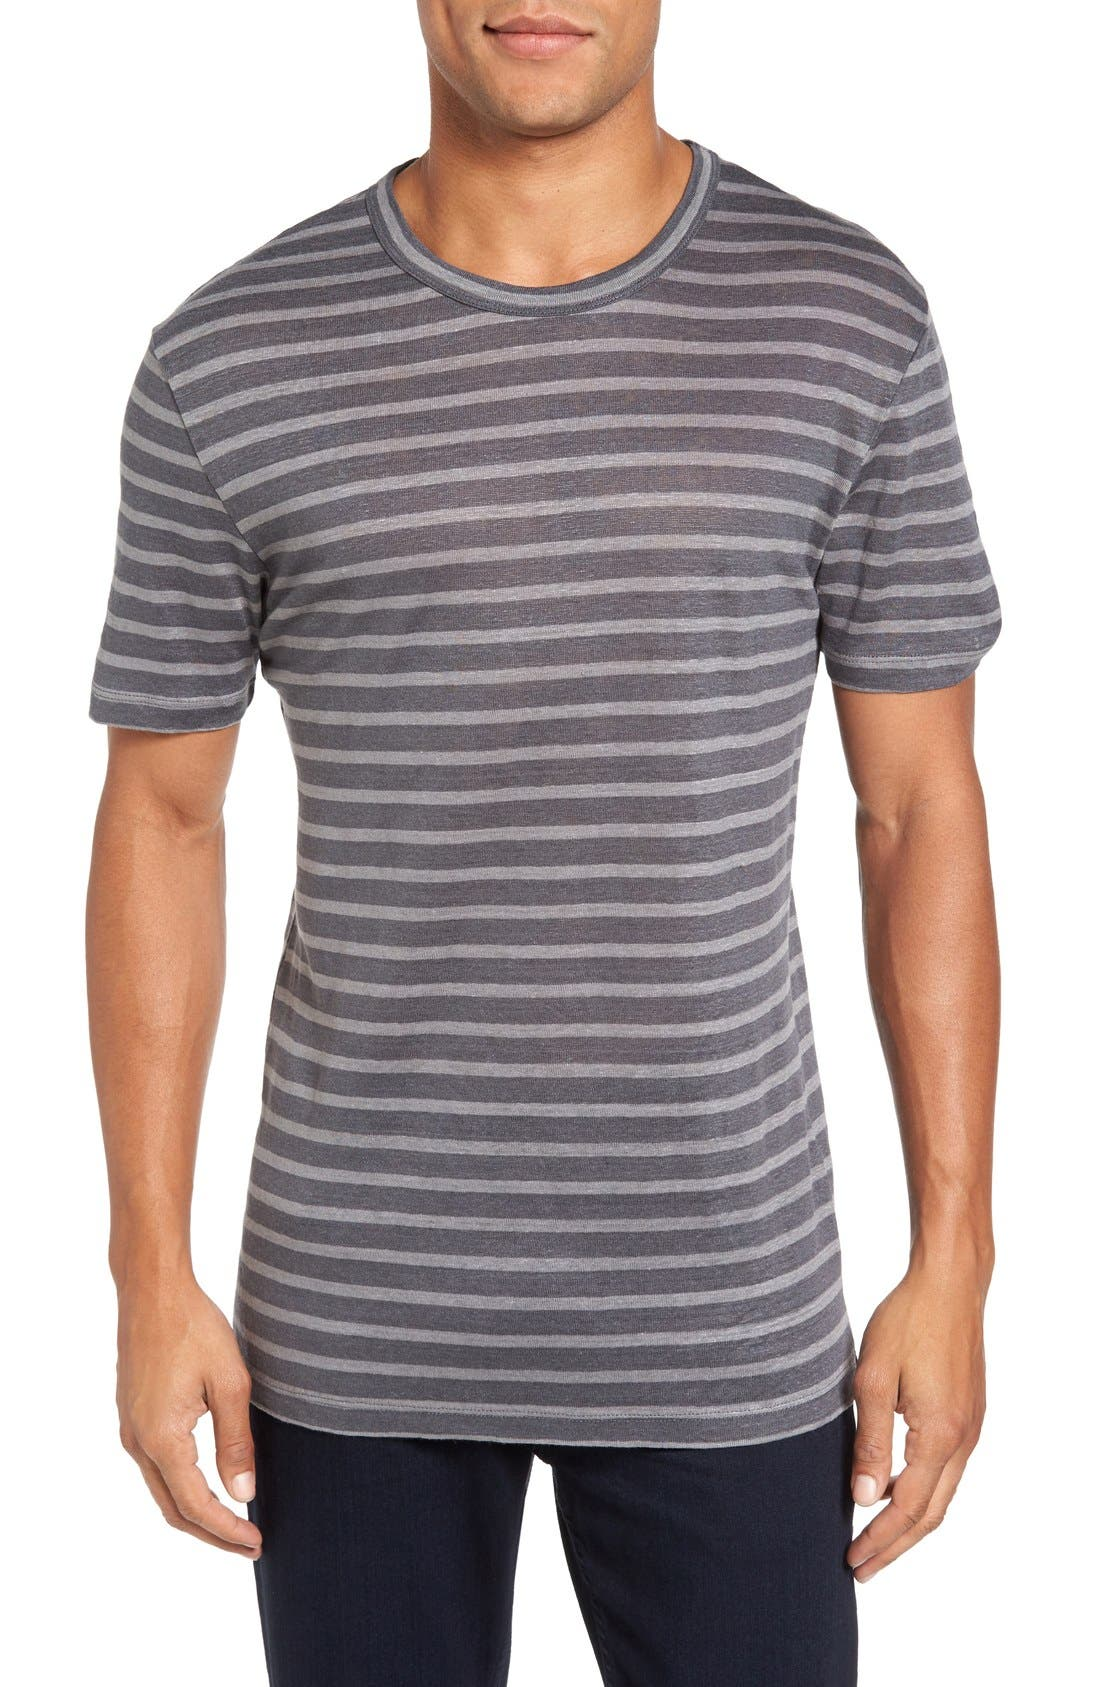 Alternate Image 1 Selected - Slate & Stone Stripe Linen T-Shirt